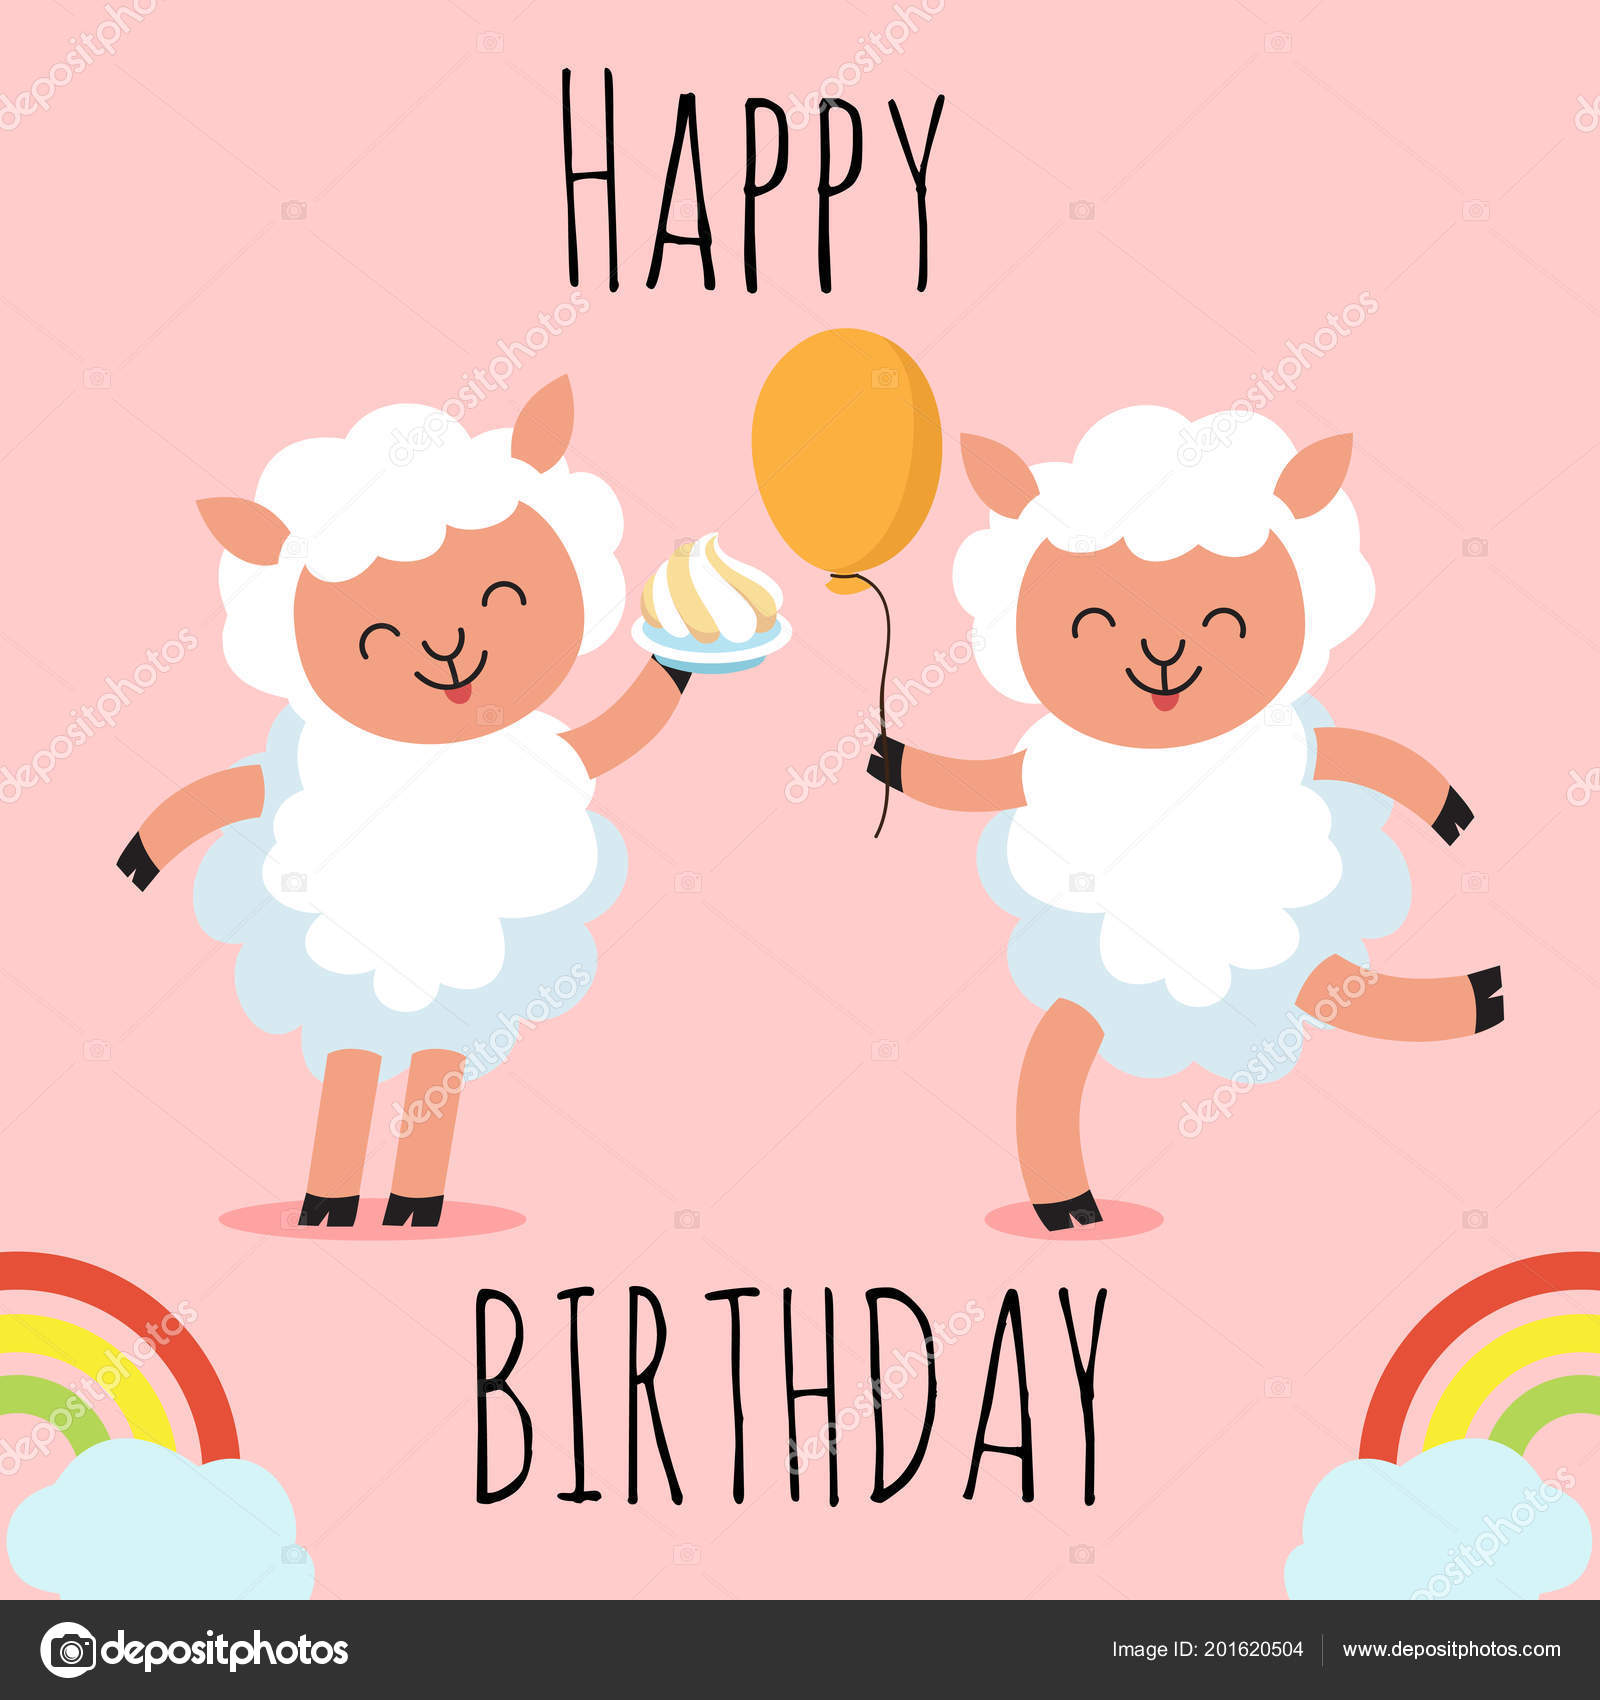 Happy Birthday Greeting Card With Cute Cartoon Character Sheep Stock Vector